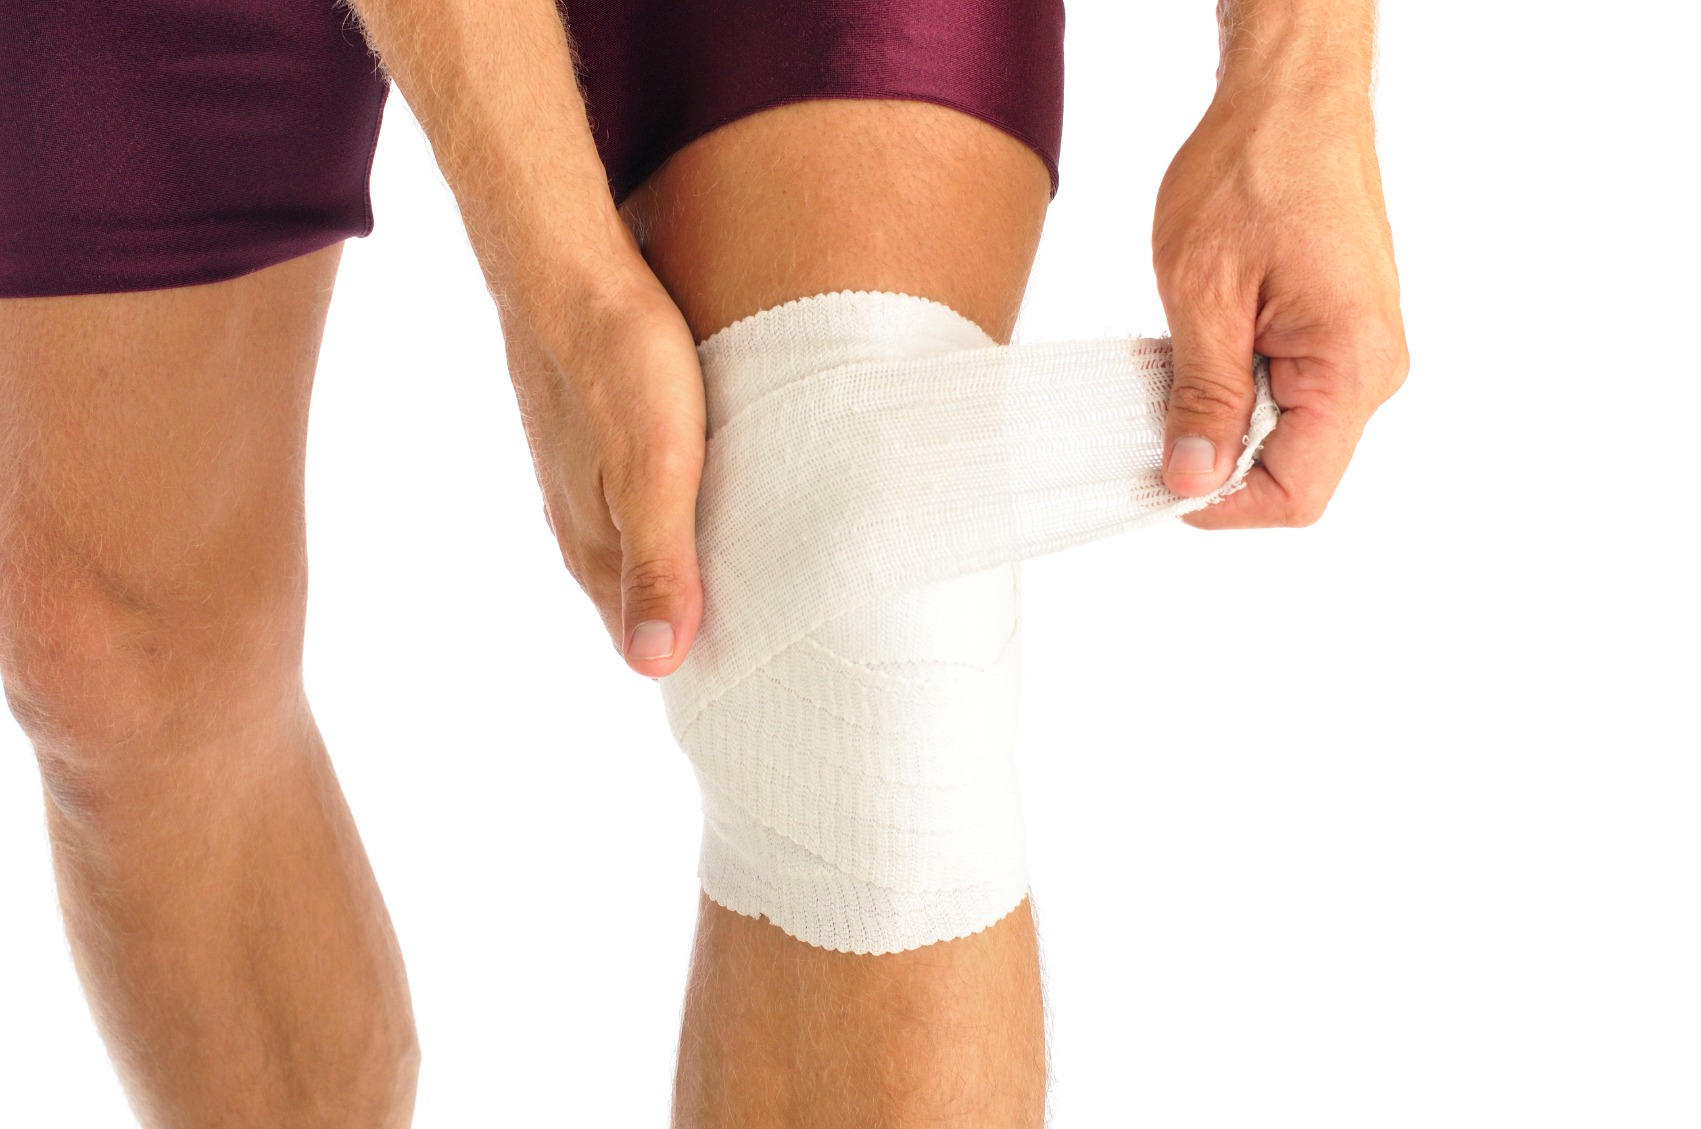 Injury-Recovery-Physical-Therapy-bandage-compression-for-an-injury.jpg